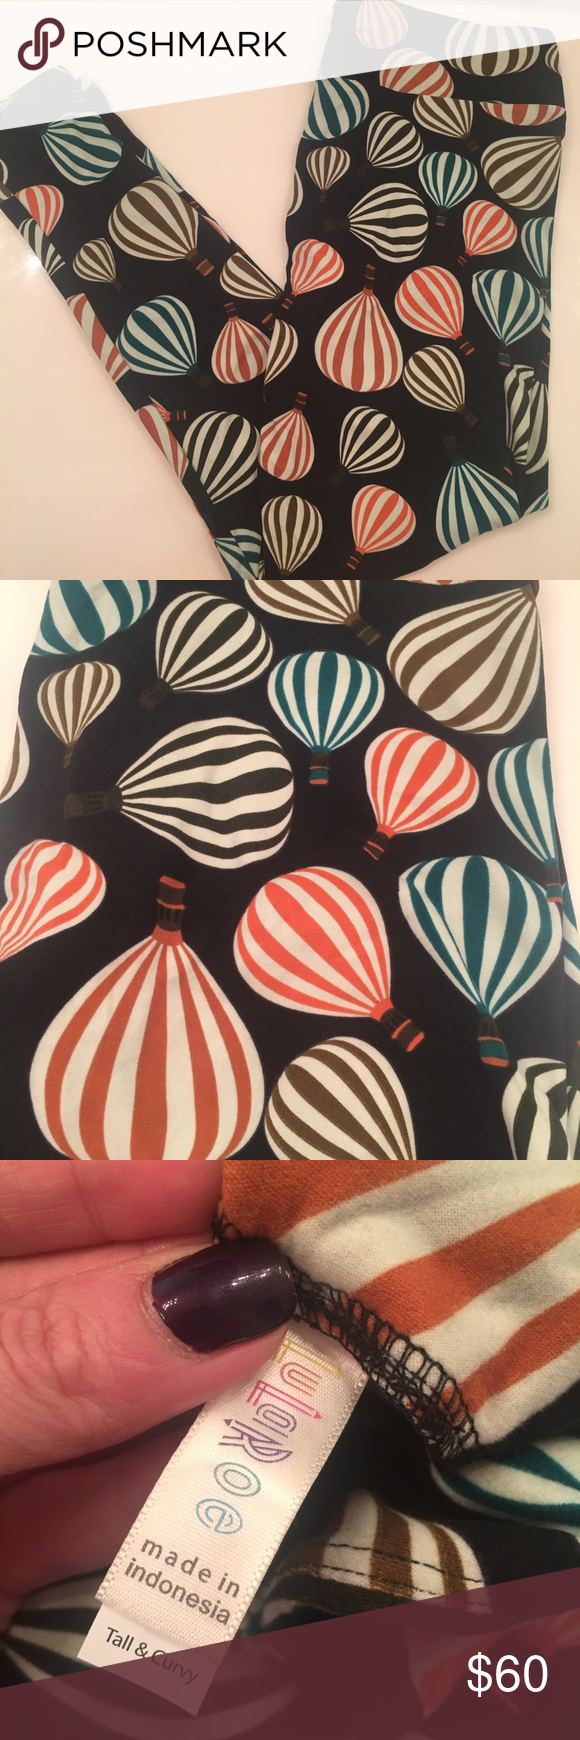 1f64dbecc00ba7 LuLaRoe TC leggings hot air balloons Super cute and soft leggings. Rare  unicorn print. Offers are welcome, but 25 is not a reasonable offer.